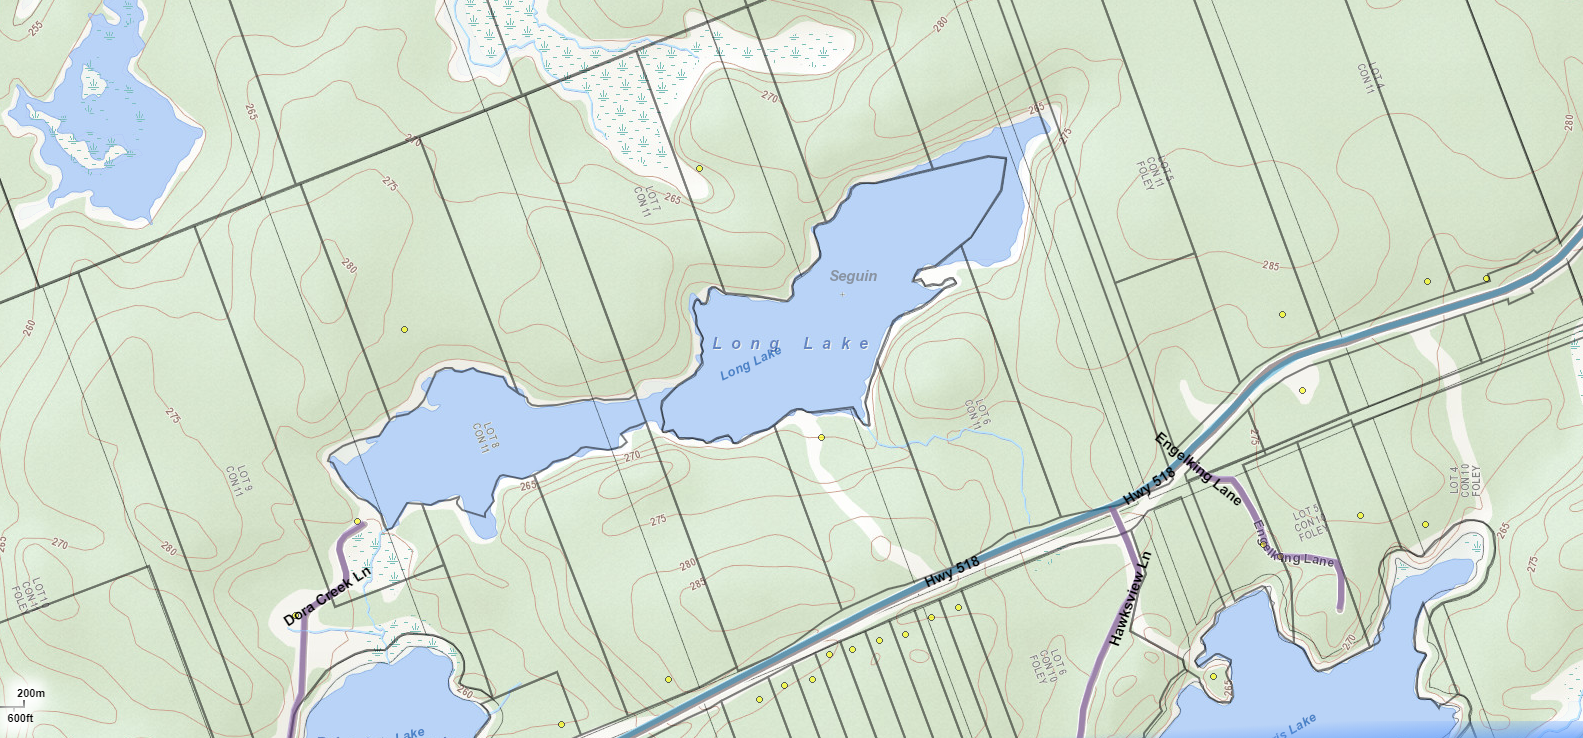 Long Lake Cadastral Map - Long Lake - Muskoka